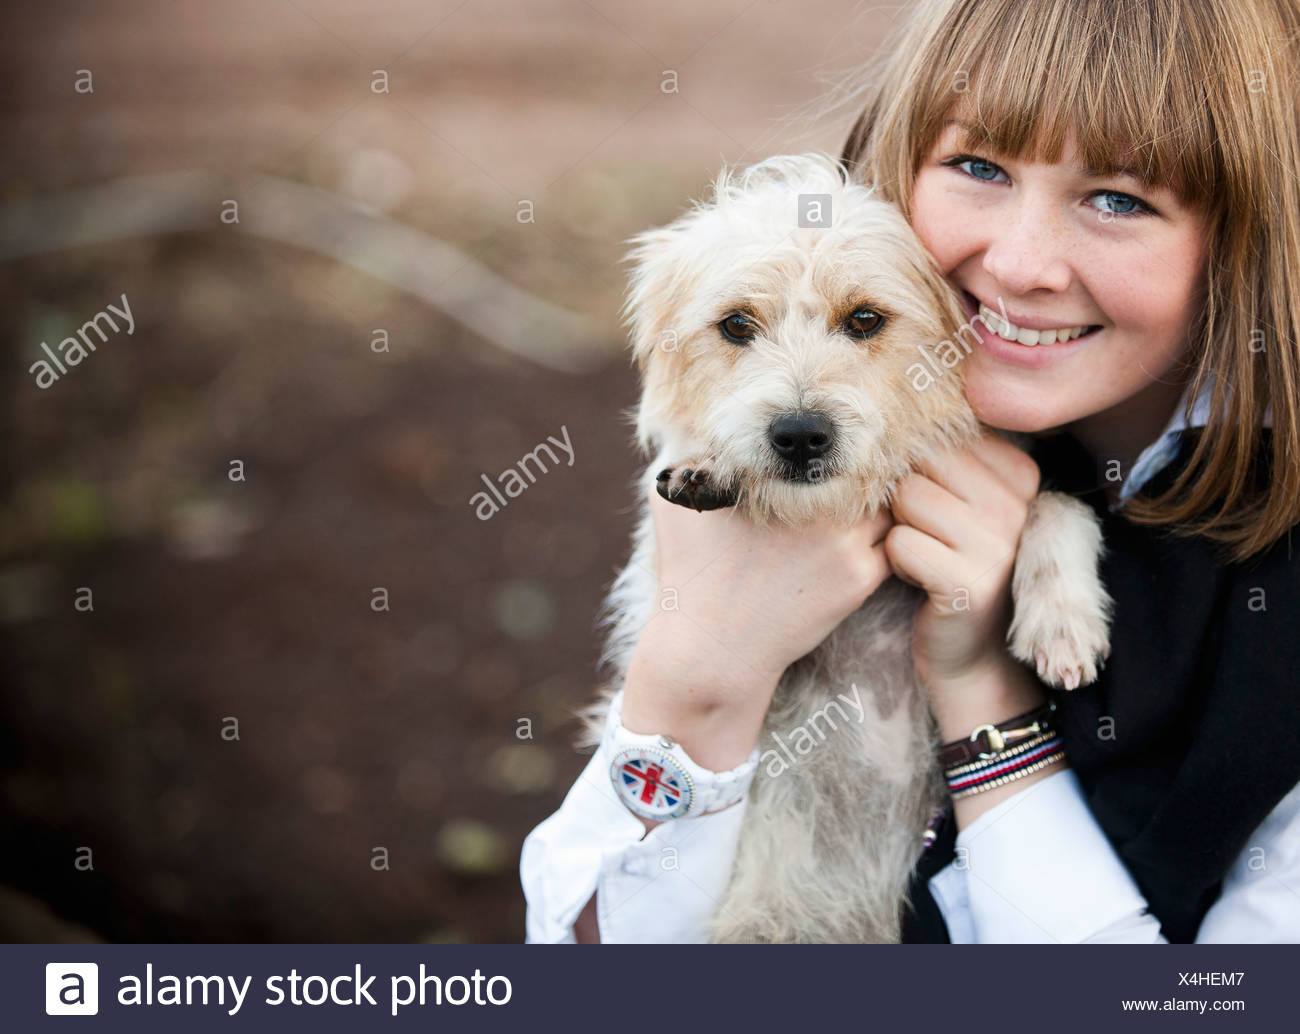 A woman hugging a small hairy terrier puppy. - Stock Image